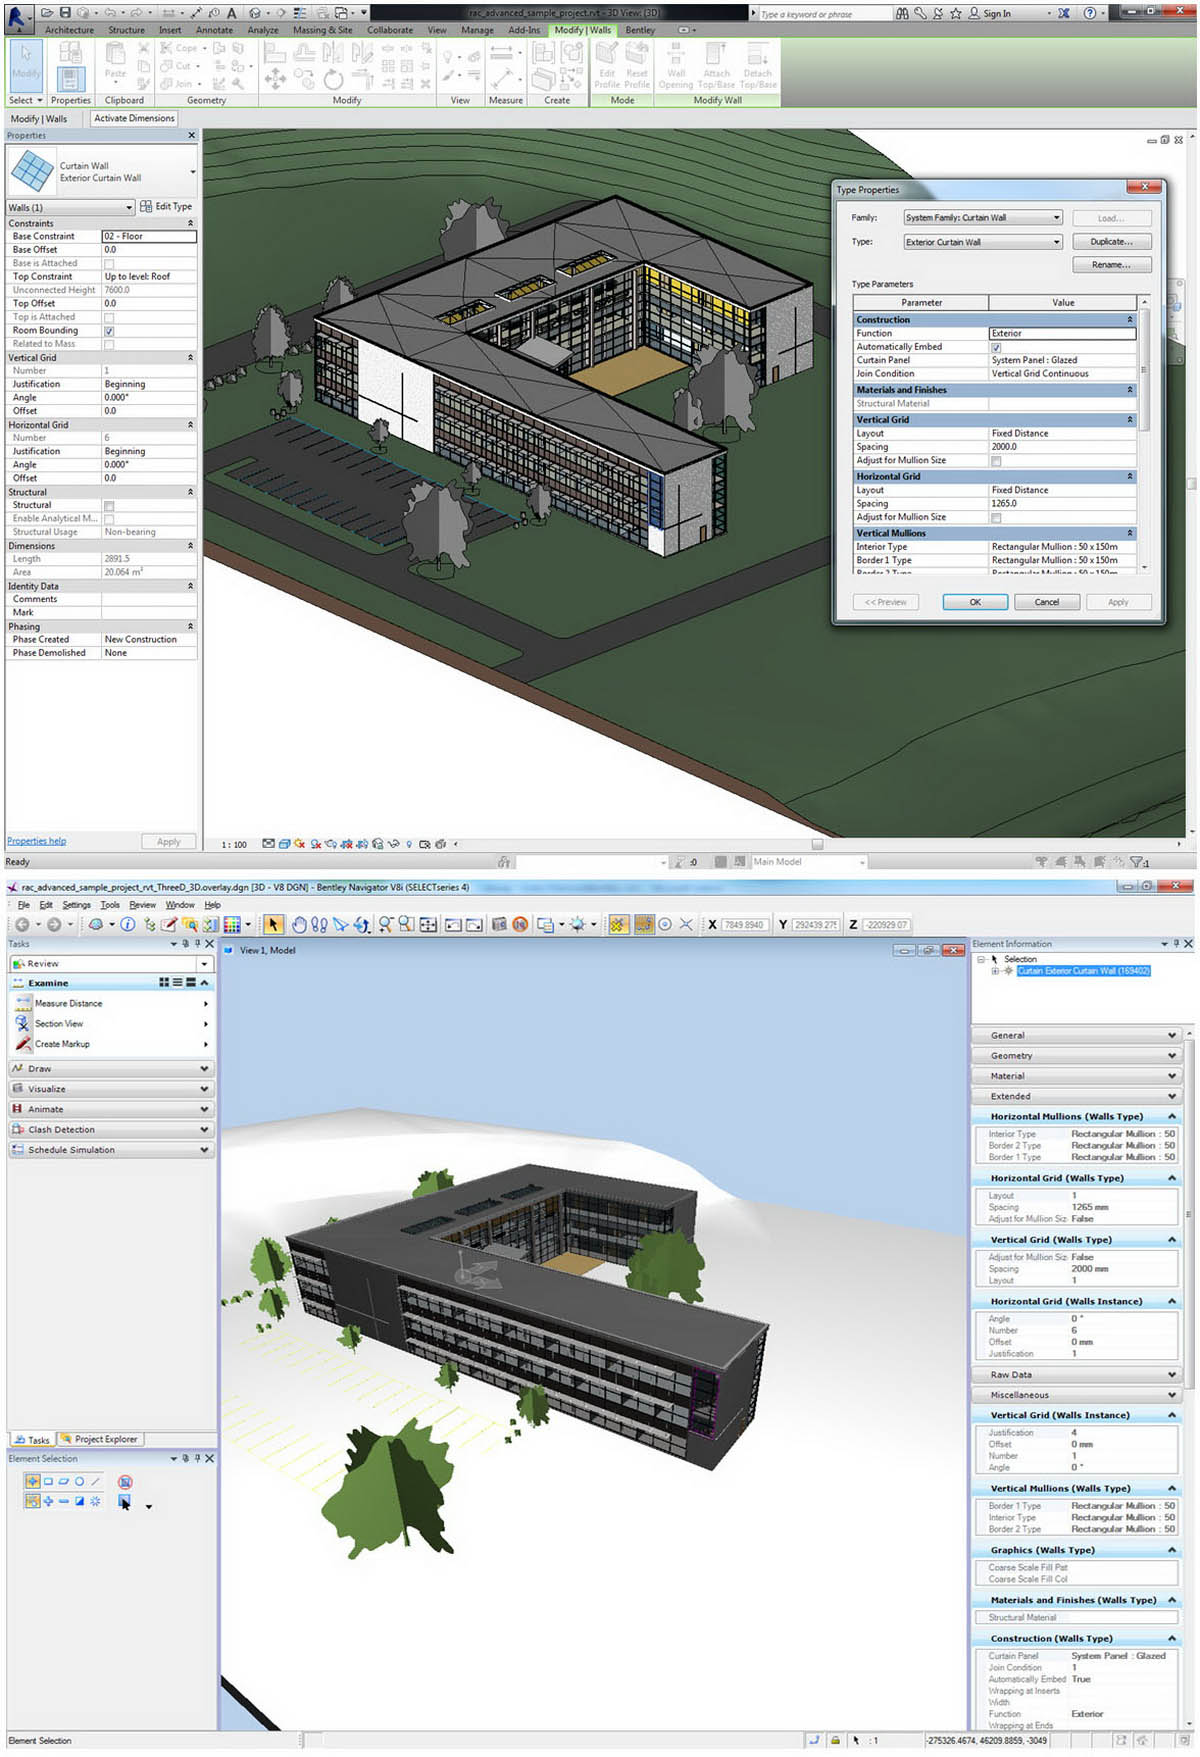 isicad :: What's going on with BIM in Russia